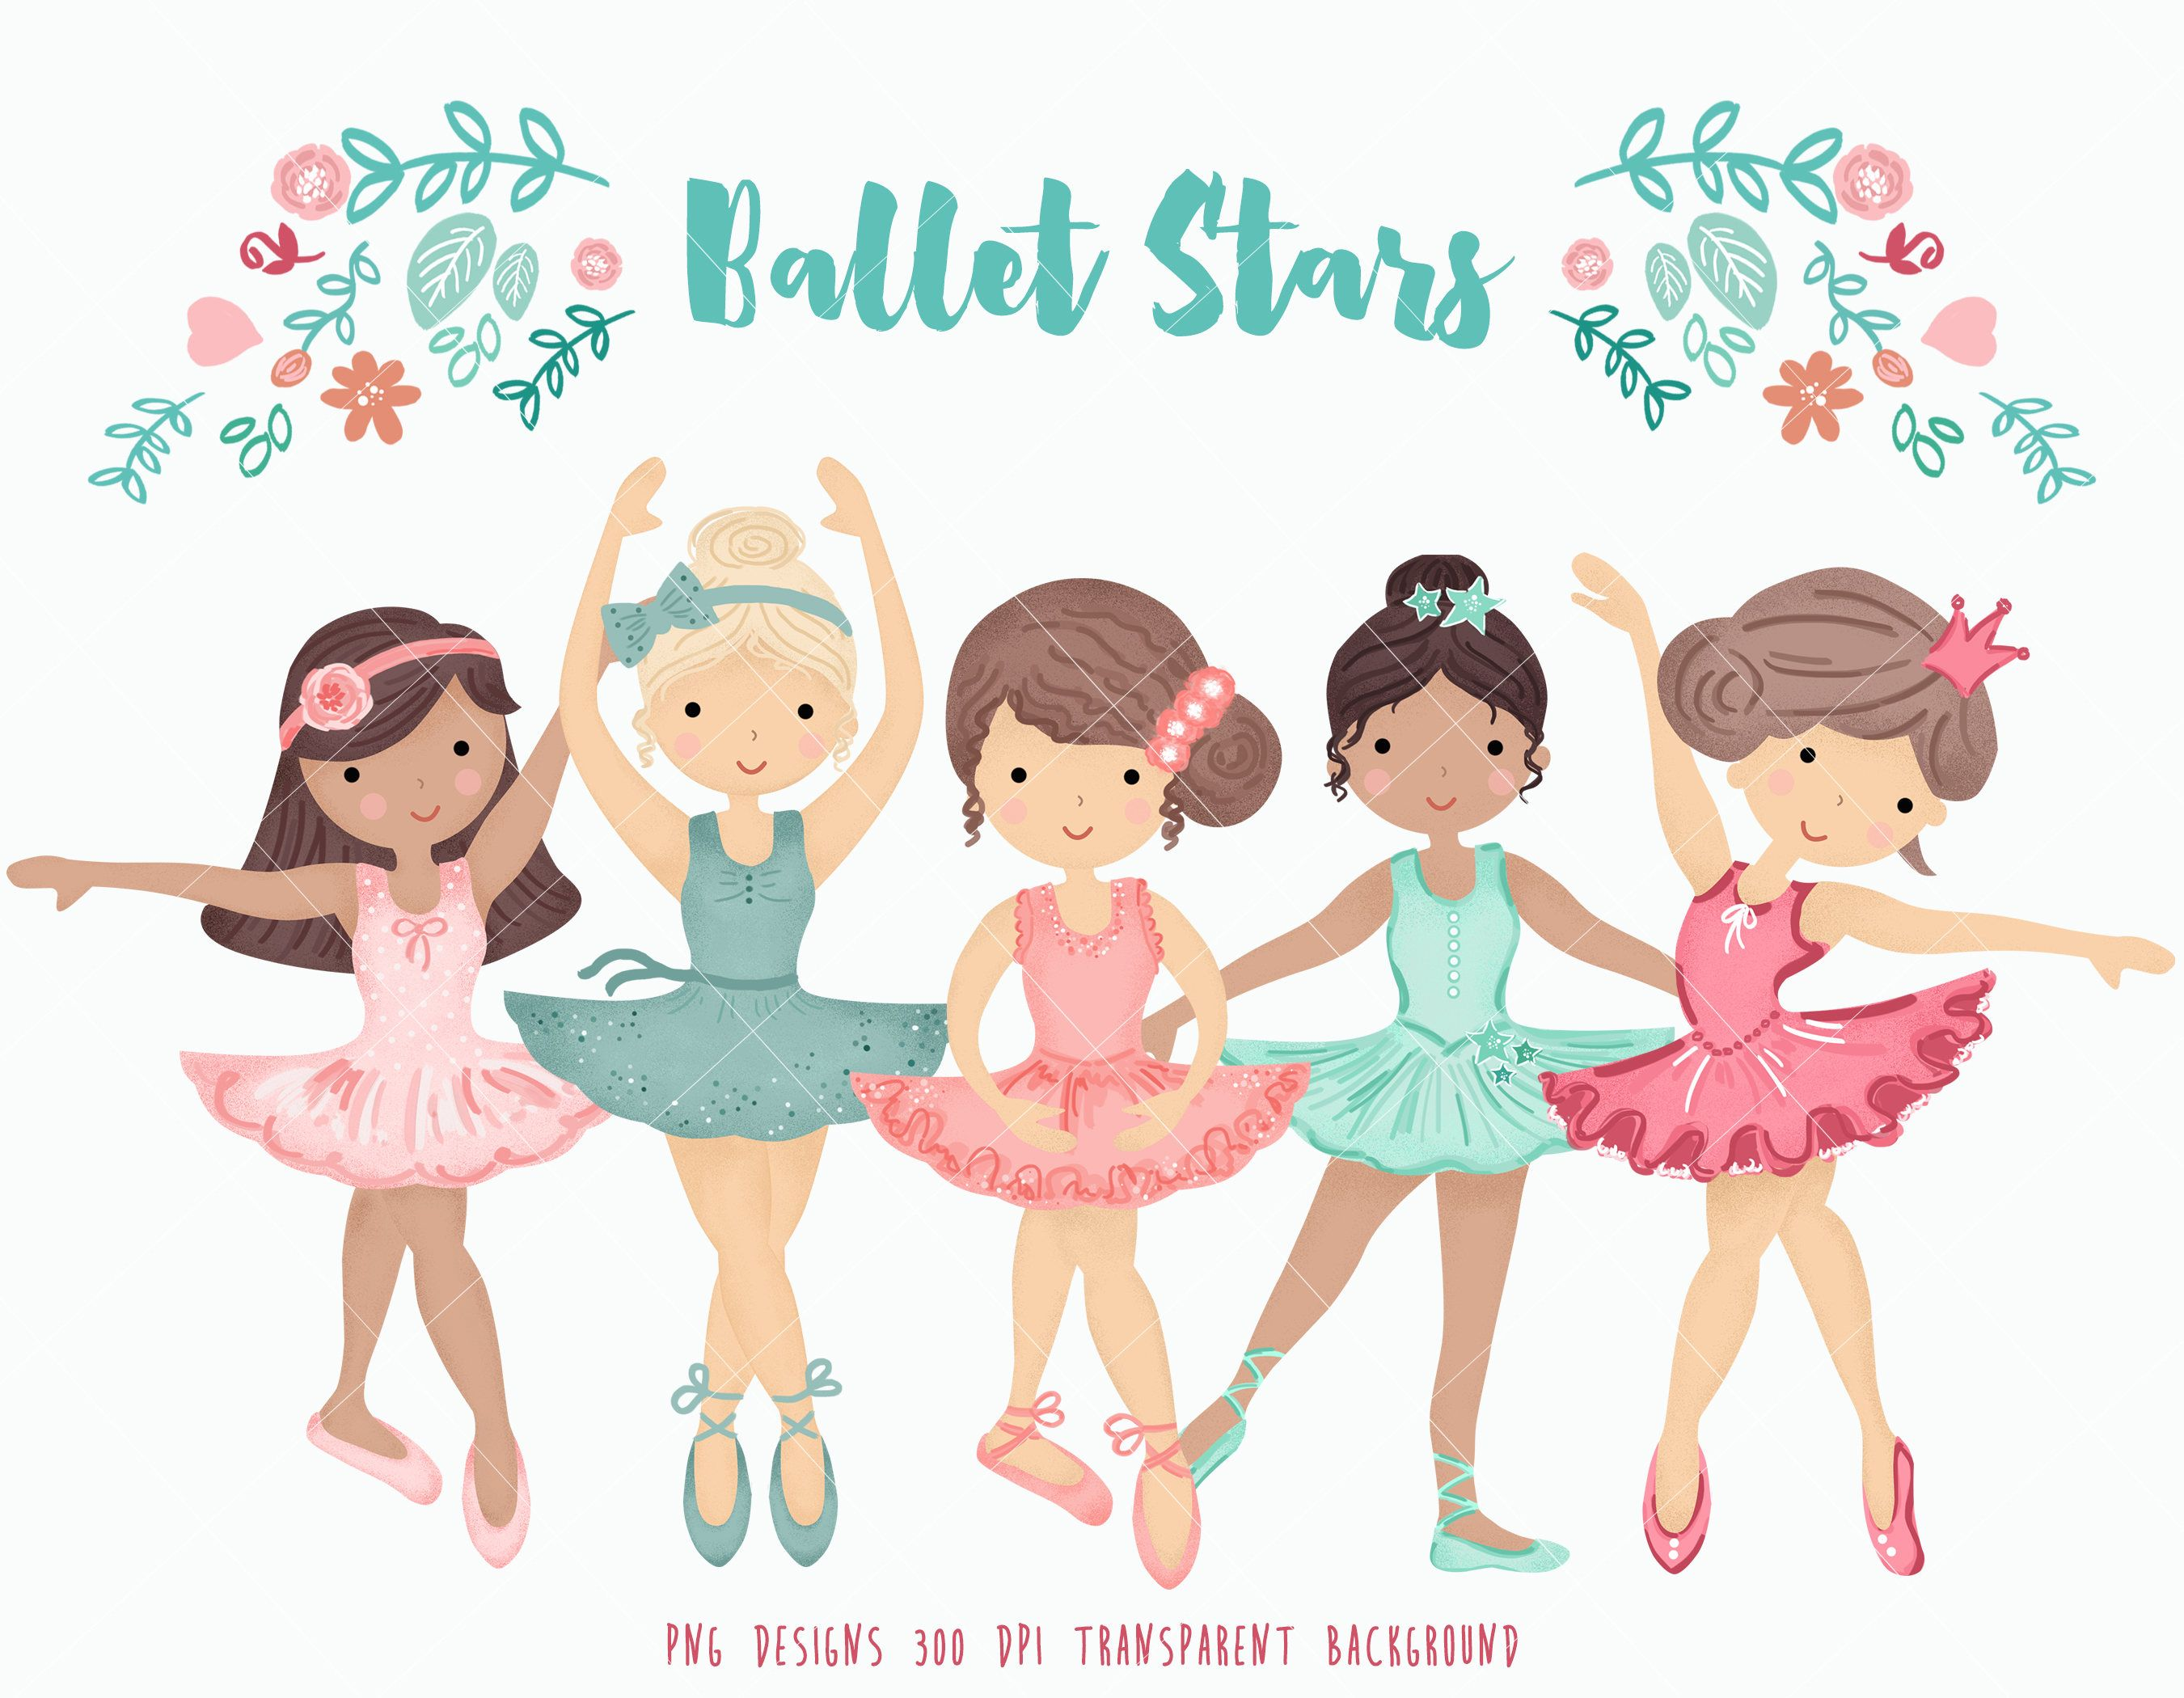 ballerina clipart personal and commercial use little ballerinas rh pinterest com ballerina clipart images ballerina clipart silhouette